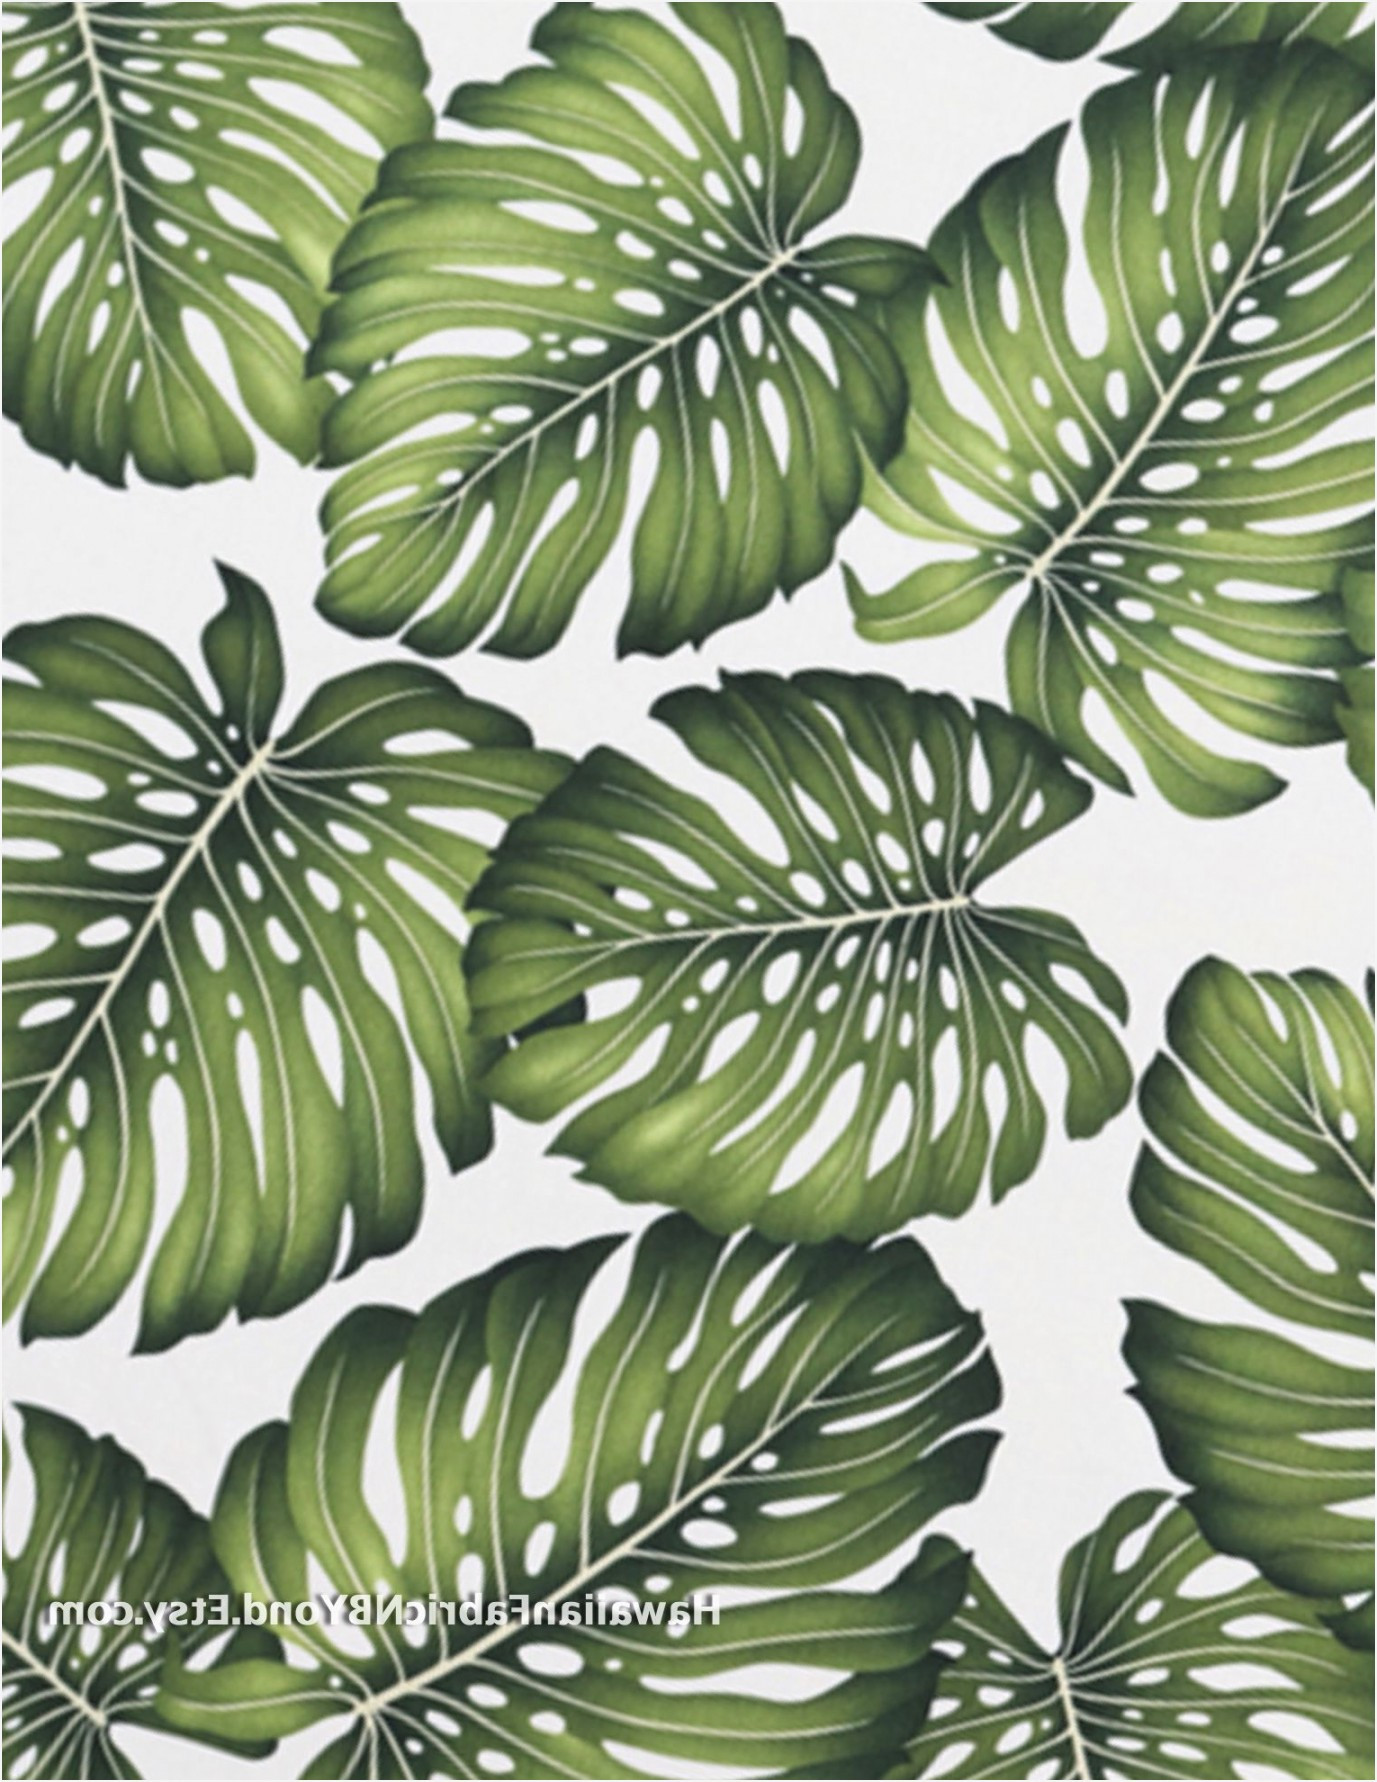 25 Wonderful Macy's Vases Decorative Accents Sale 2021 free download macyamp039s vases decorative accents sale of tropical upholstery fabric inspirational tropical leaf fabric print pertaining to tropical upholstery fabric inspirational tropical leaf fabric p